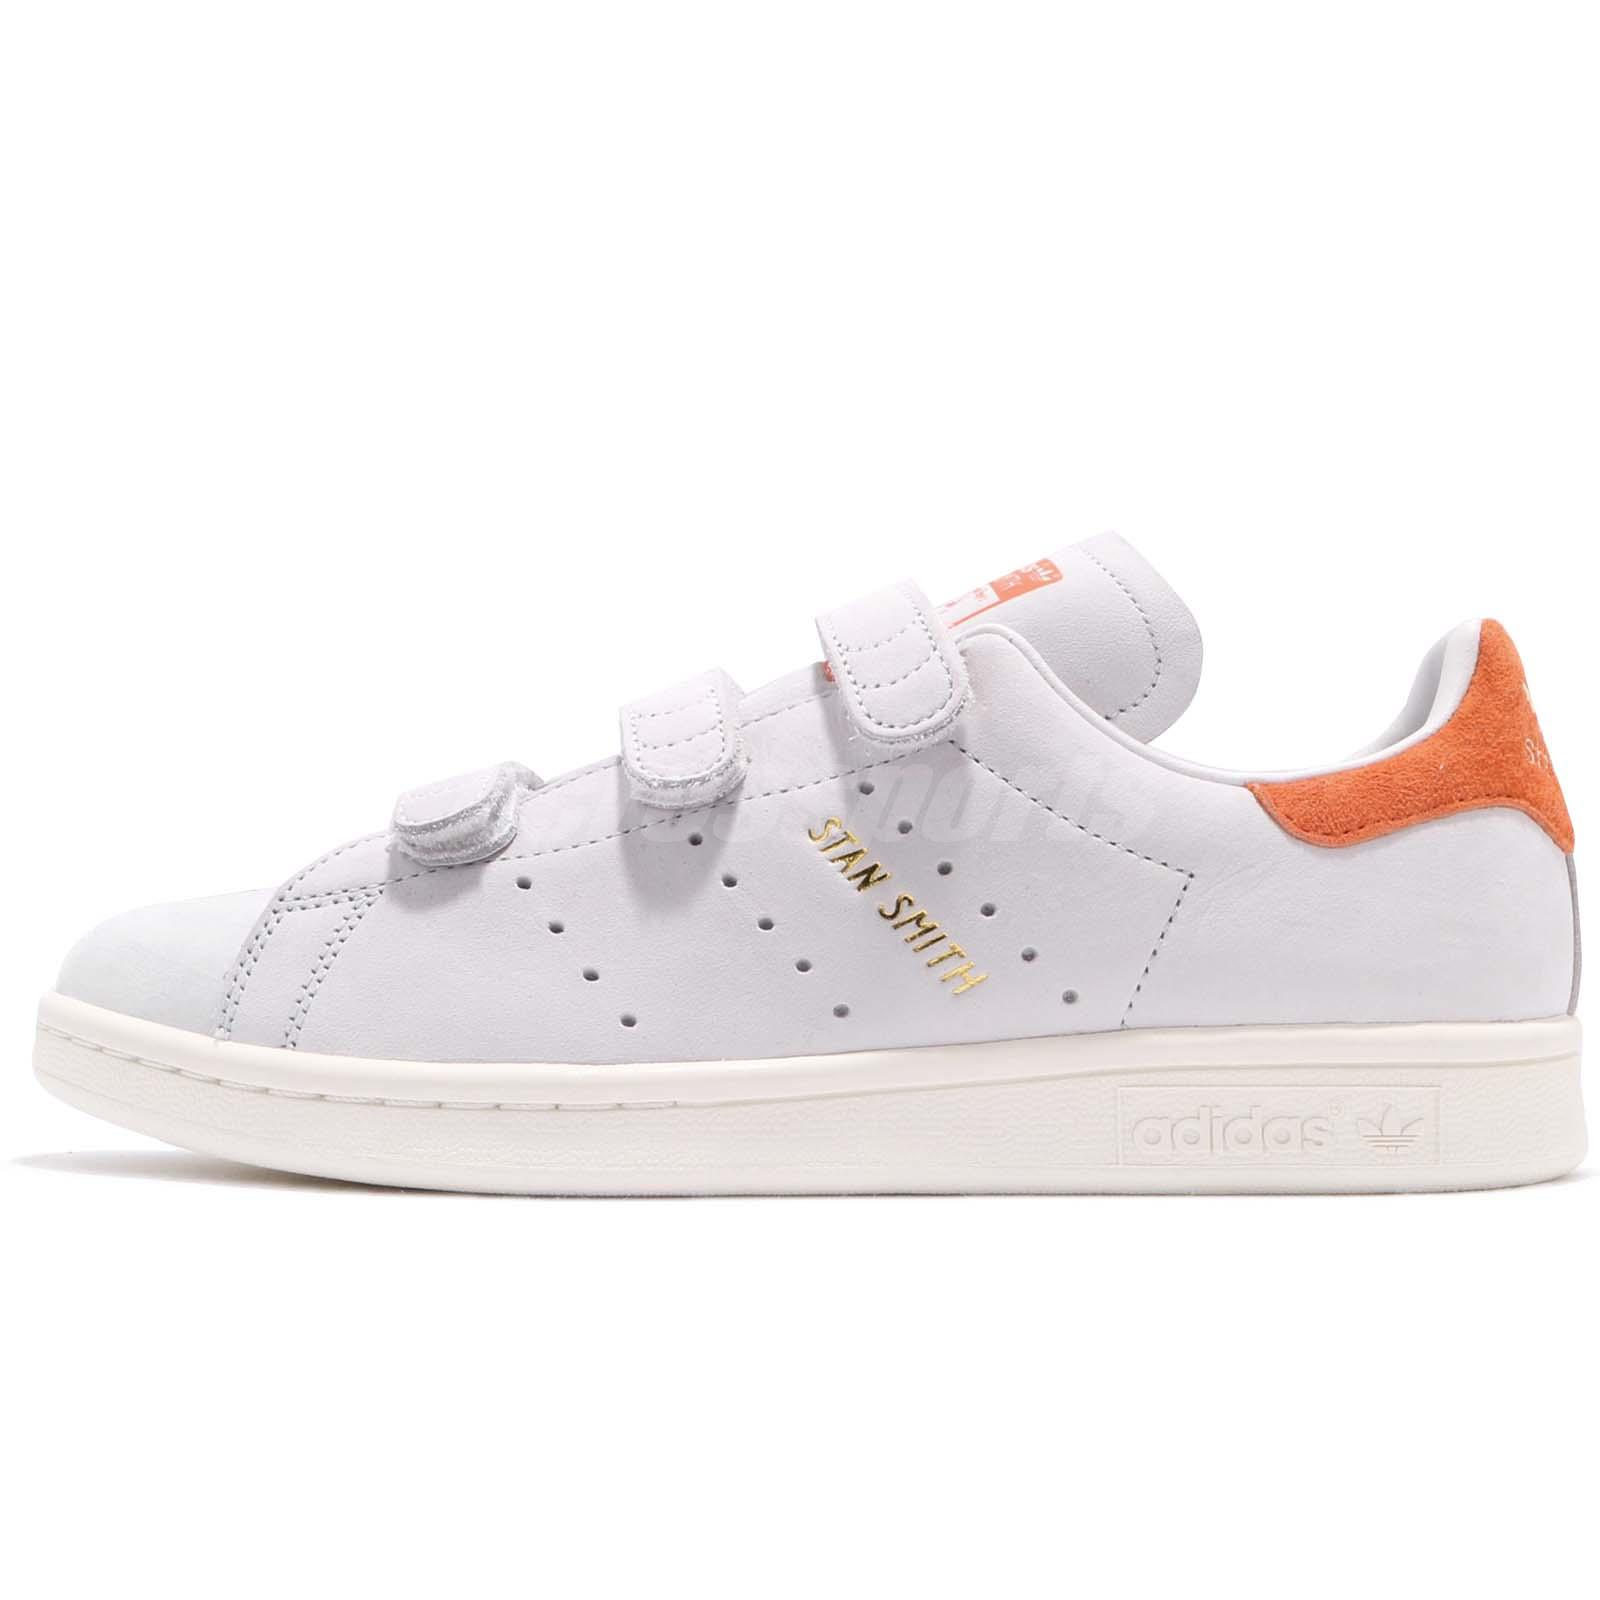 low priced d3e84 2aa13 1803 adidas Originals Stan Smith Womens Sneakers Sports Shoe